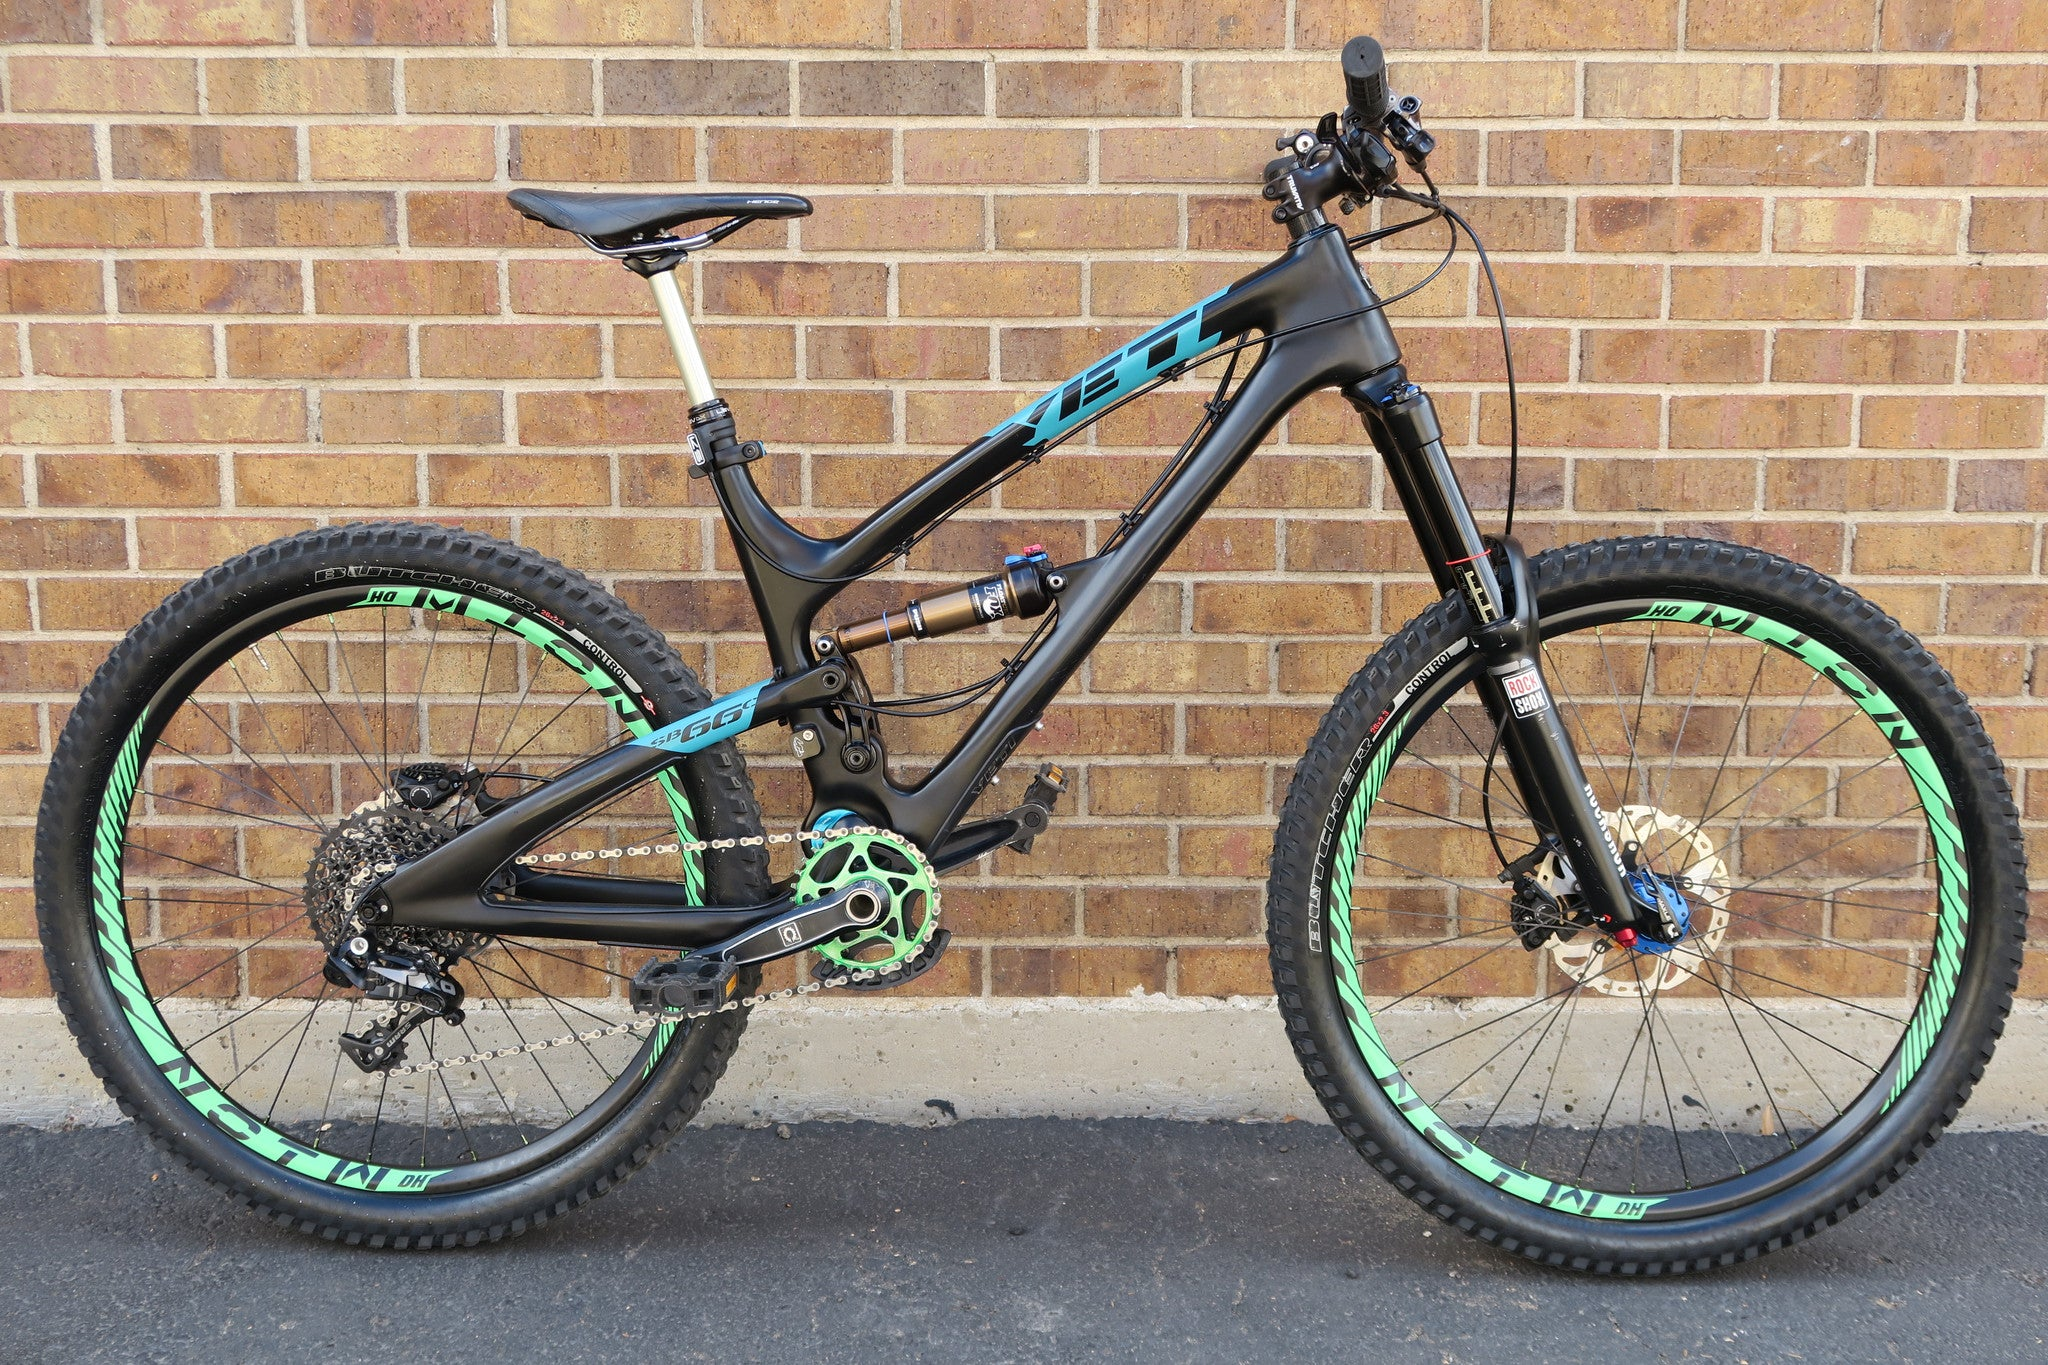 Yeti Sb66 Carbon Frame For Sale